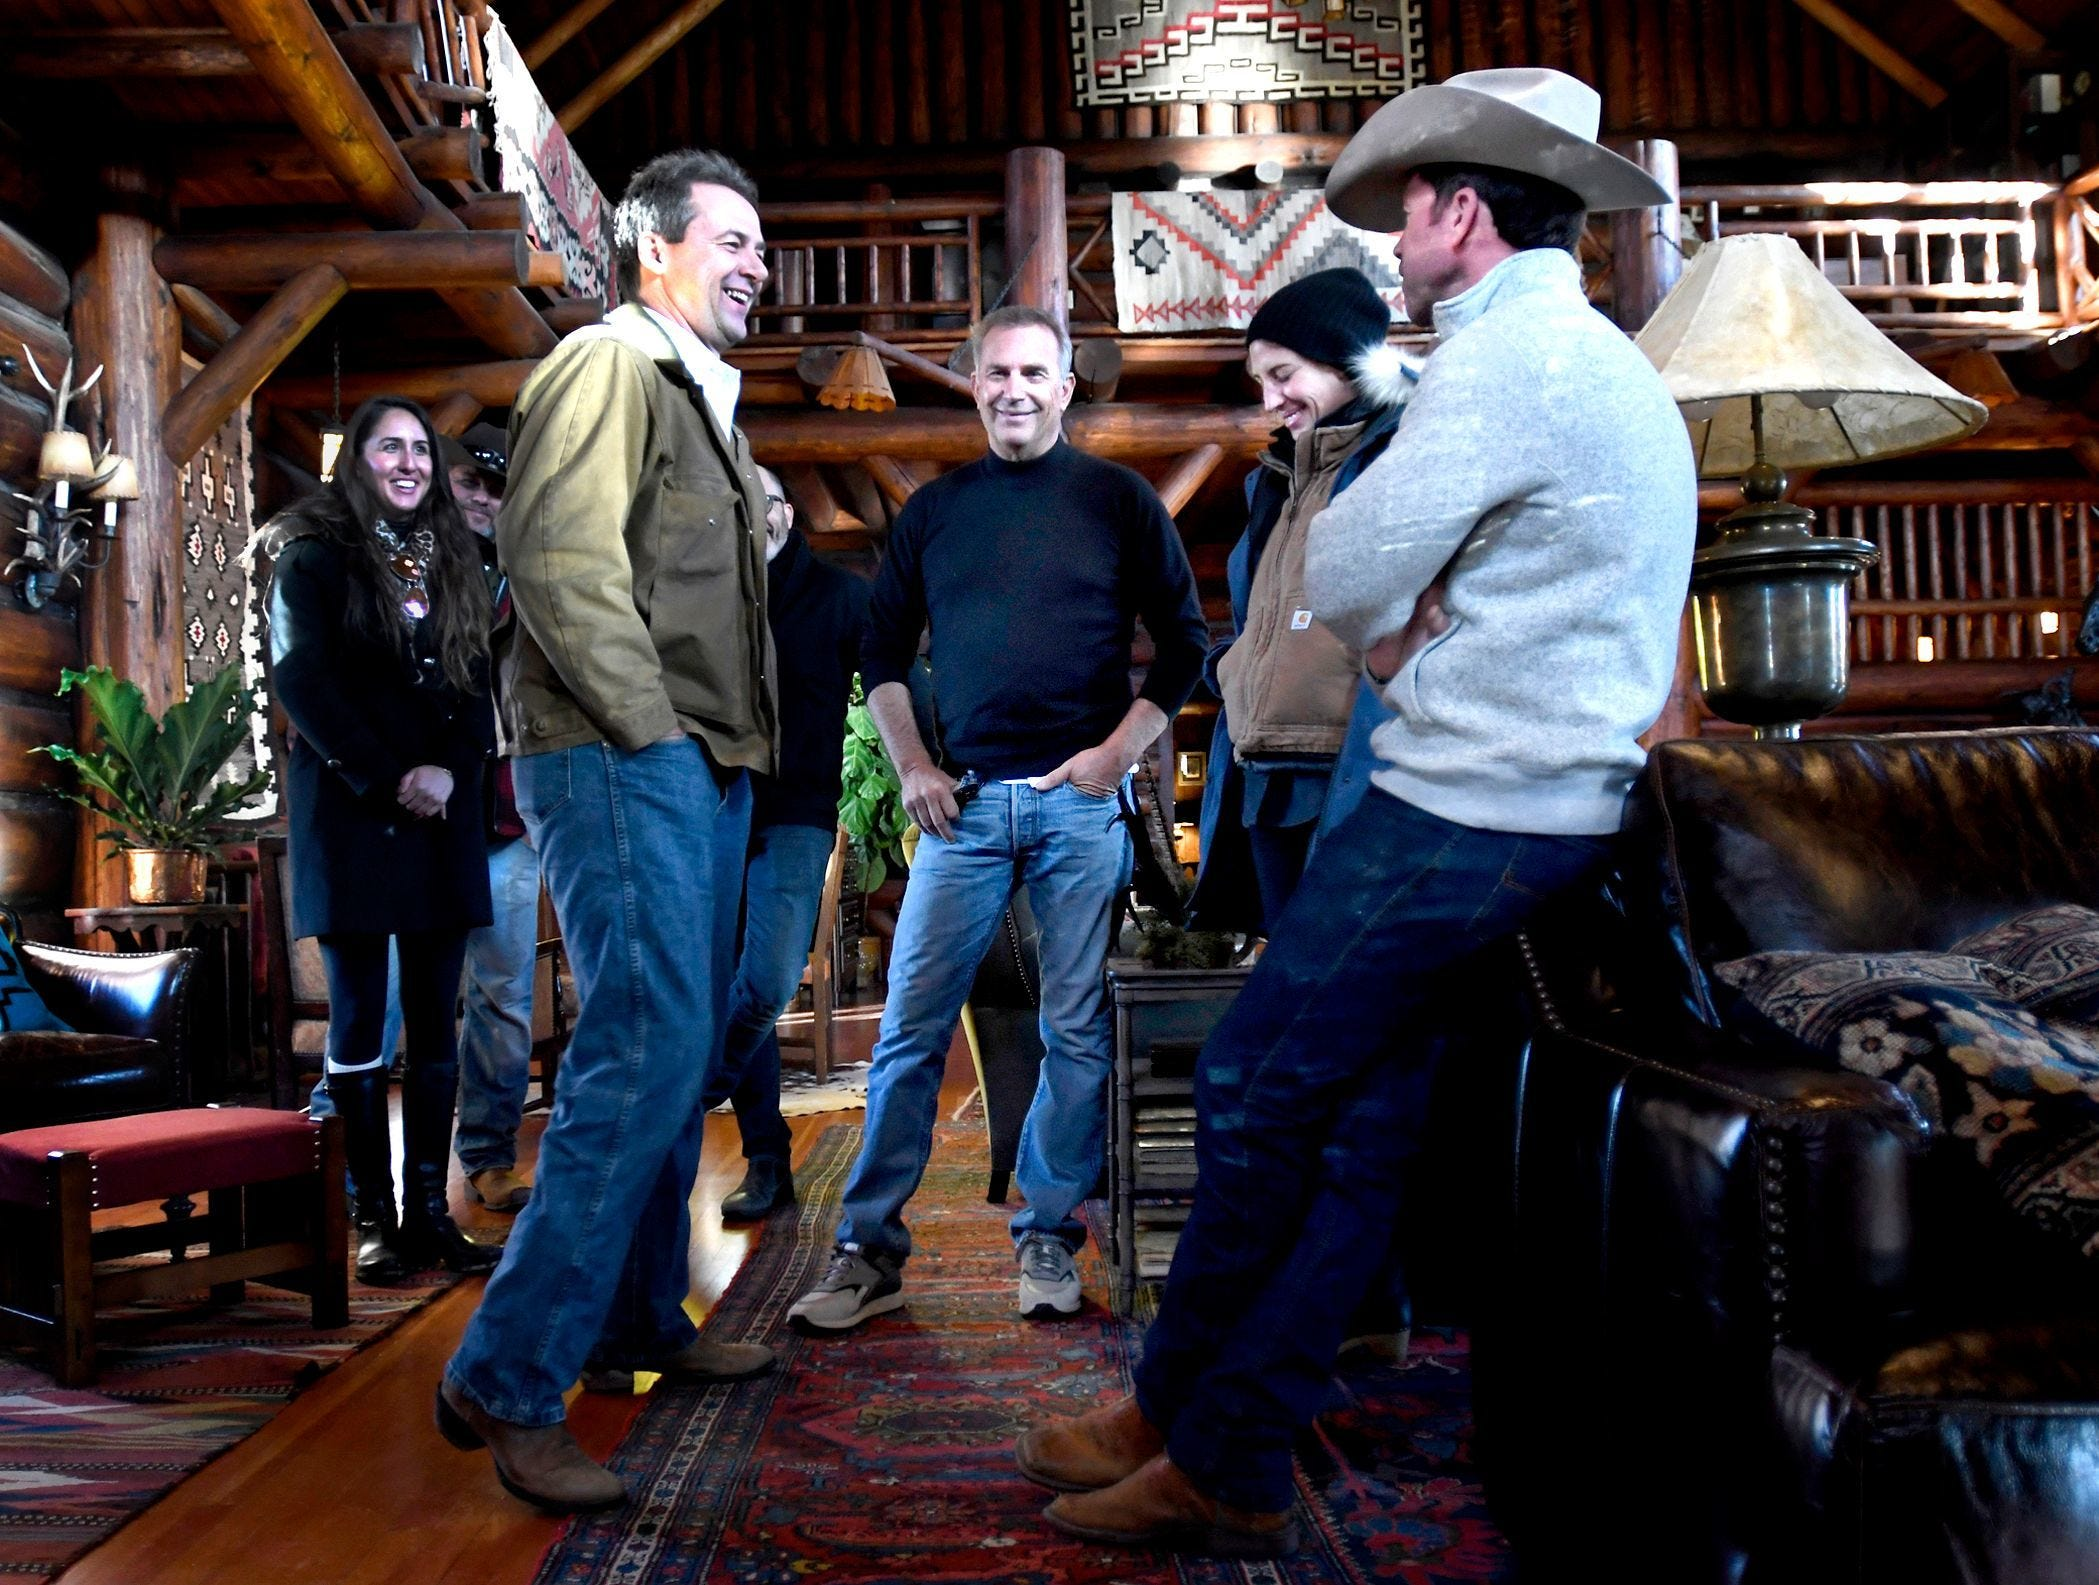 """Gov. Steve Bullock, foreground from left, appears with actor Kevin Costner, production designer Ruth De Jong and writer-director Taylor Sheridan at the Chief Joseph Ranch during a visit to the set of the series ?Yellowstone? in Darby.   Kurt Wilson/The Missoulian via AP In this Dec. 7, 2017 photo, Montana Gov. Steve Bullock, foreground from left, appears with actor Kevin Costner, production designer Ruth De Jong and writer-director Taylor Sheridan in the lodge at the Chief Joseph Ranch during a visit to the set of the television series """"Yellowstone"""" in Darby, Mont. The series is set for release in June. (Kurt Wilson/The Missoulian via AP)"""